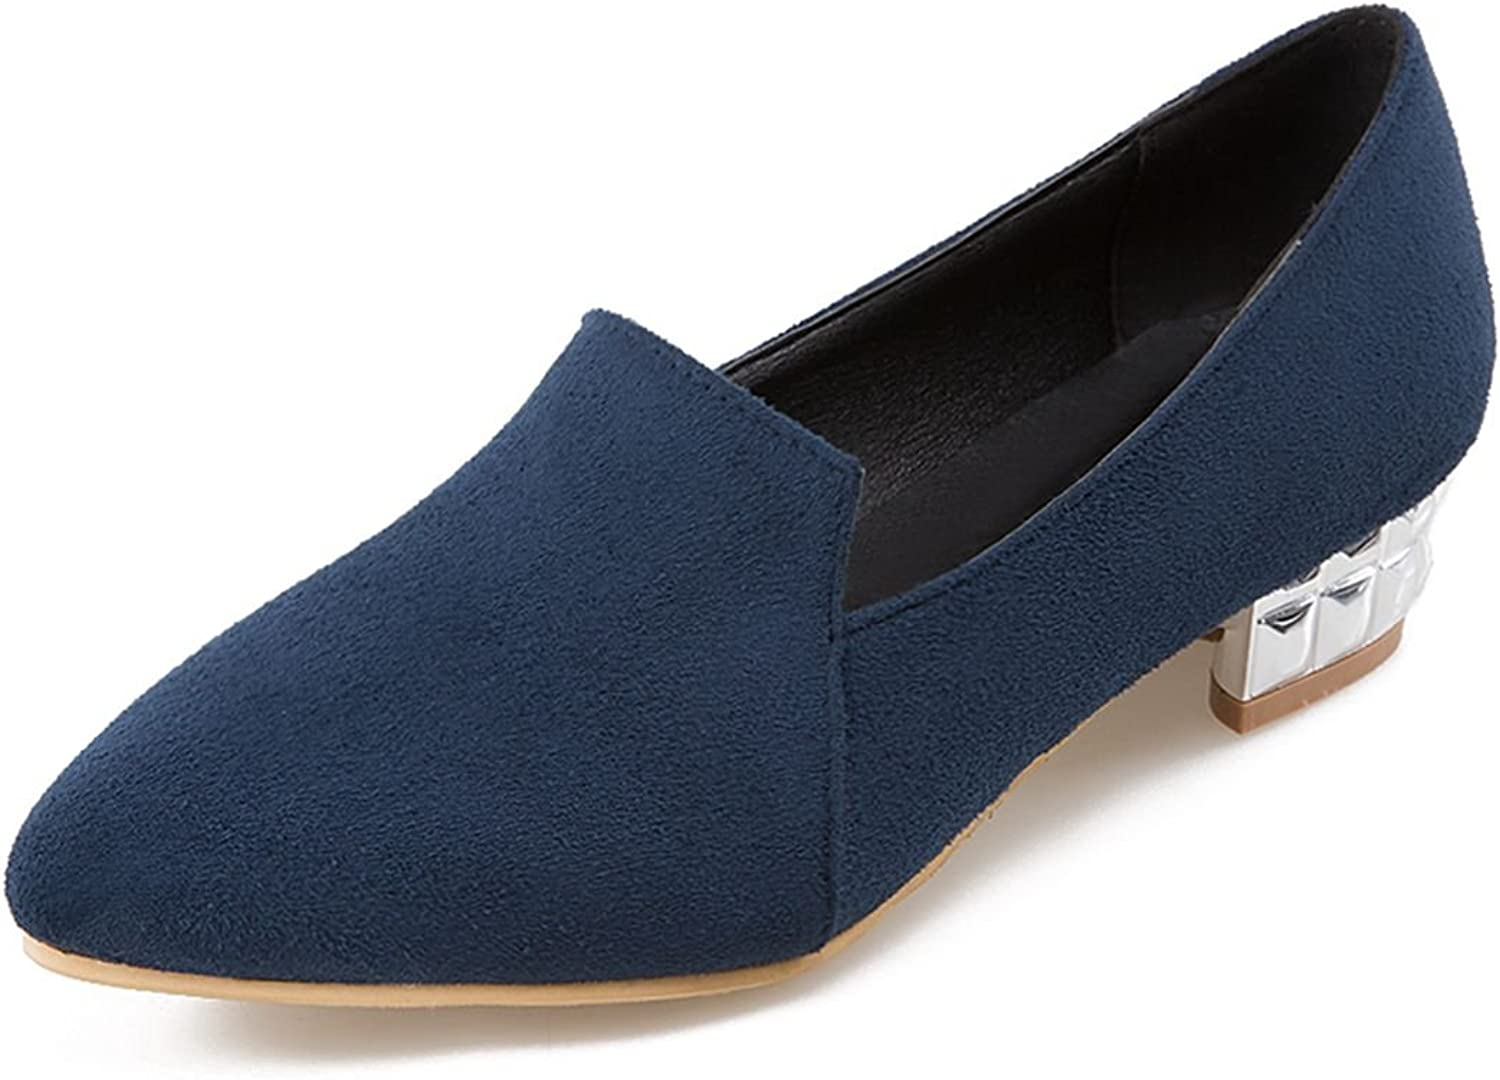 DoraTasia Suede Shallow Pointed Toe Slip on Block Thick Heel Women's Pumps